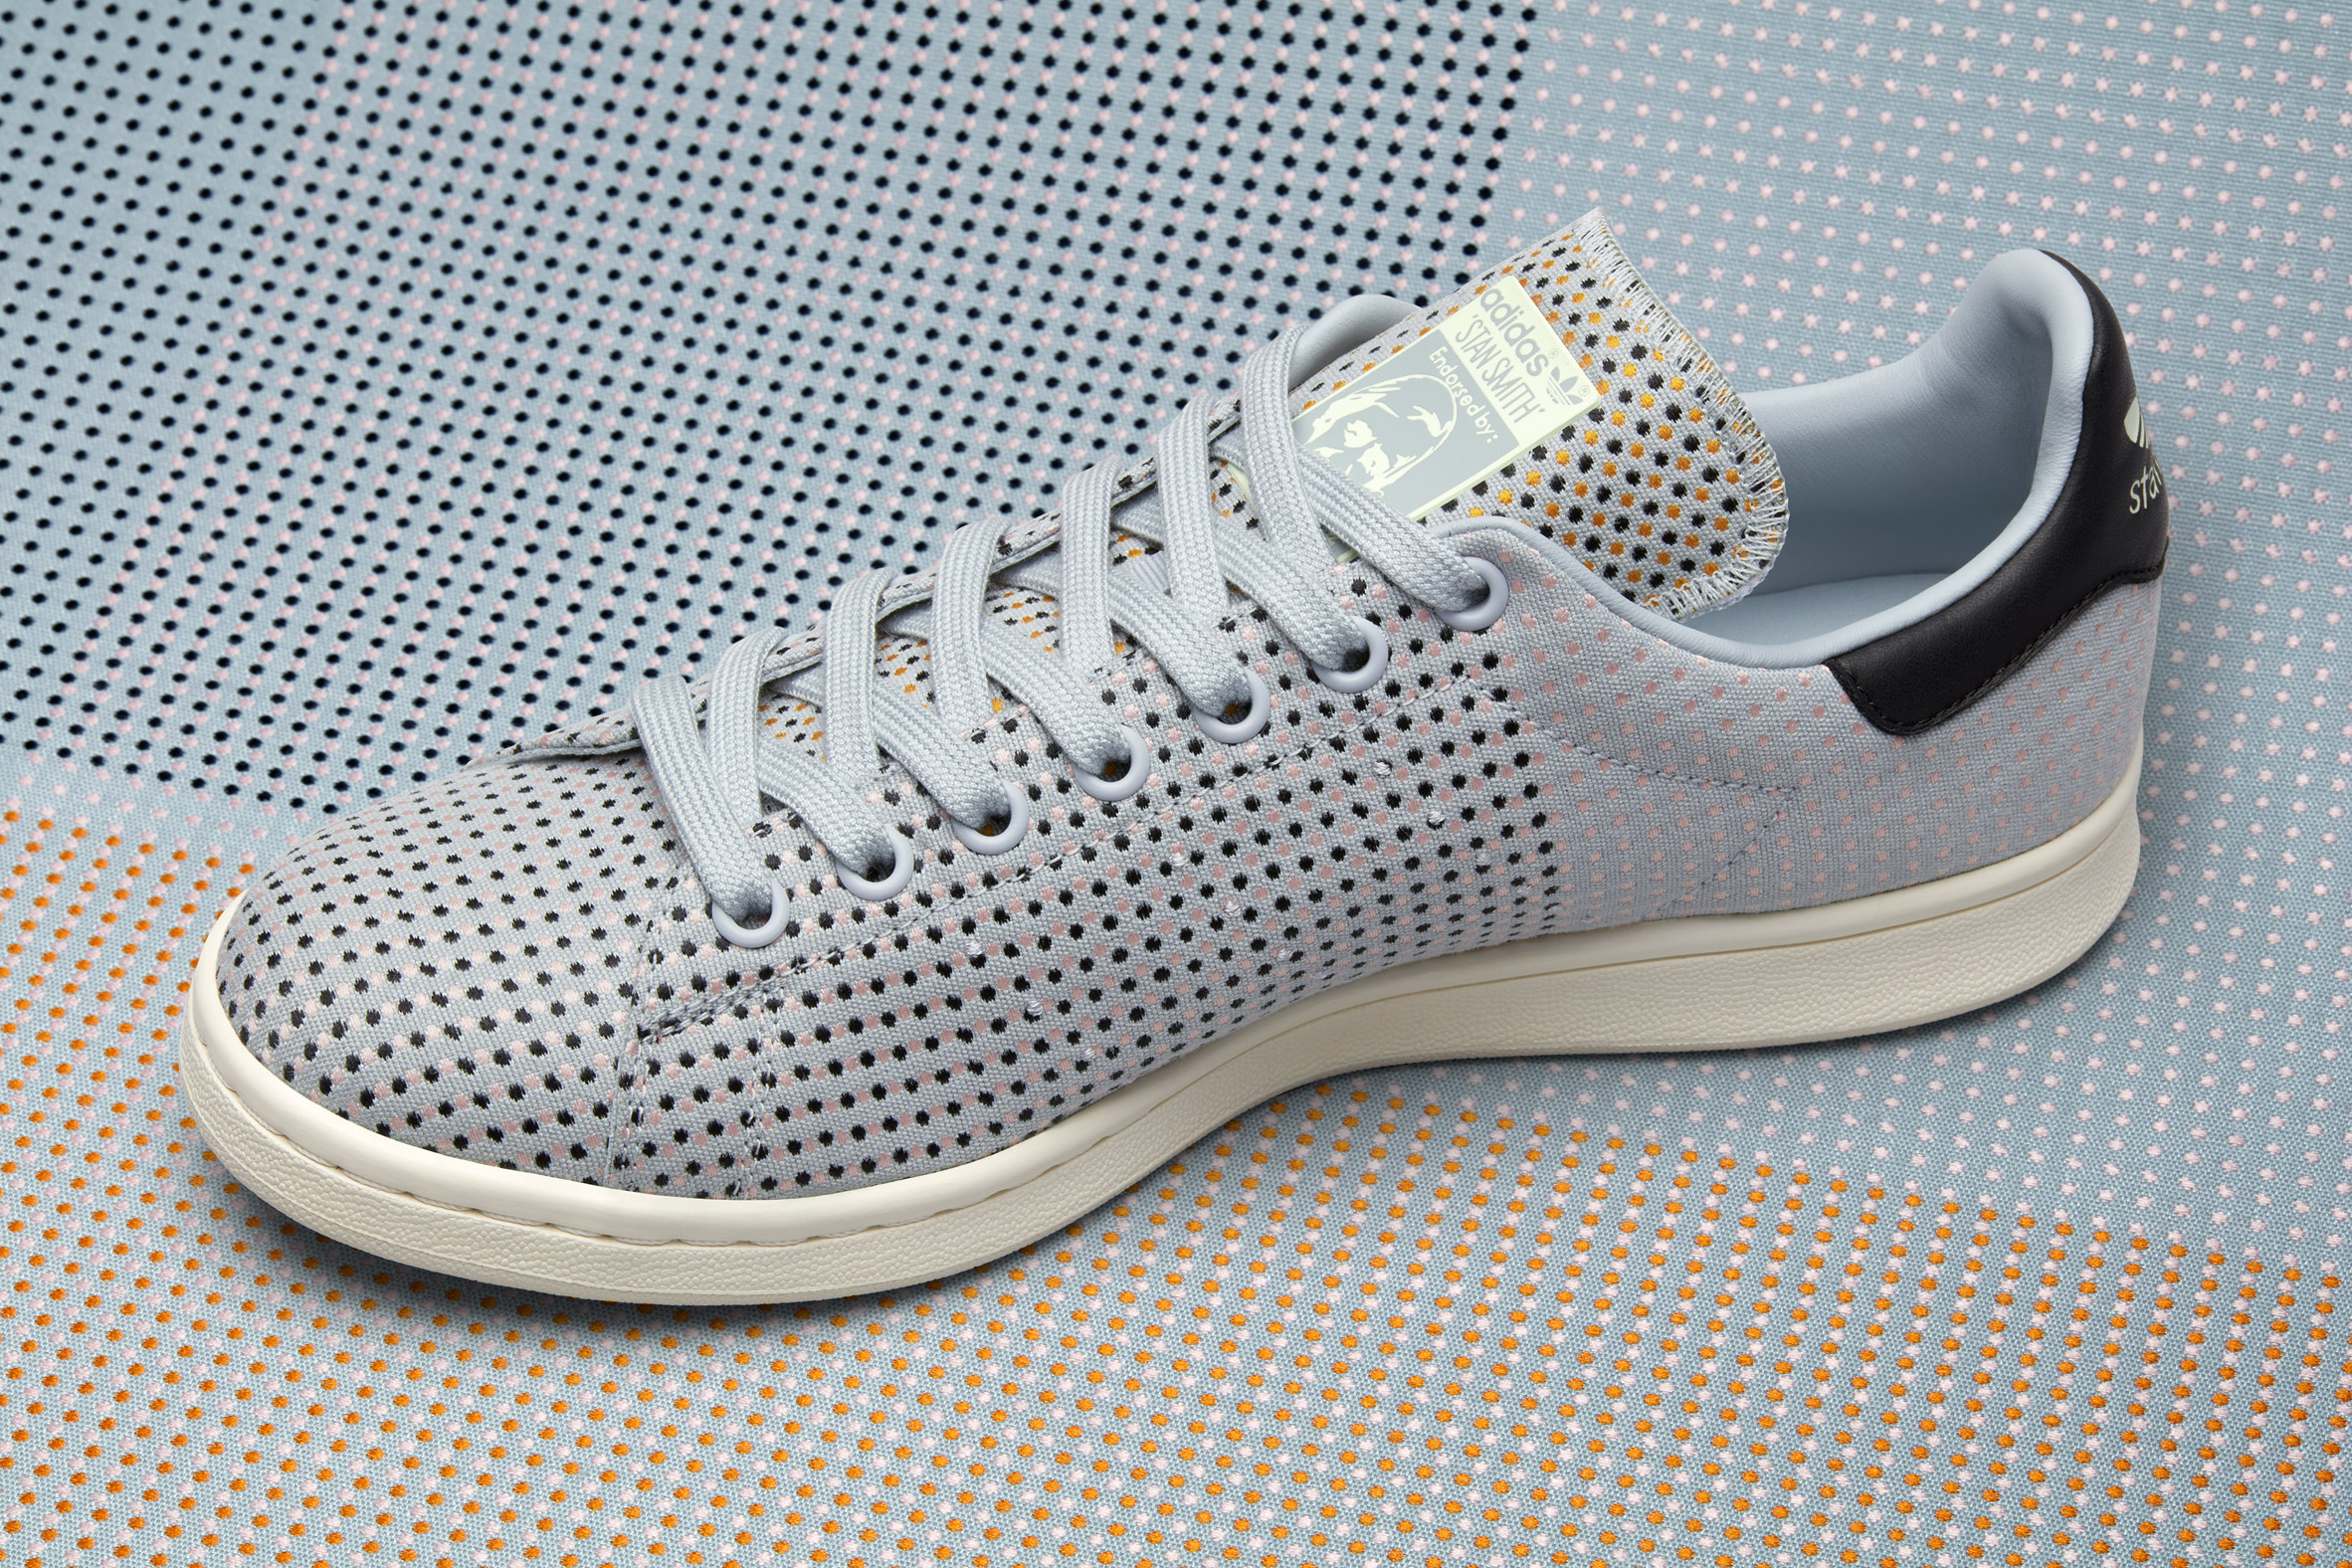 Adidas unveils special-edition Stan Smith trainers with Kvadrat fabric